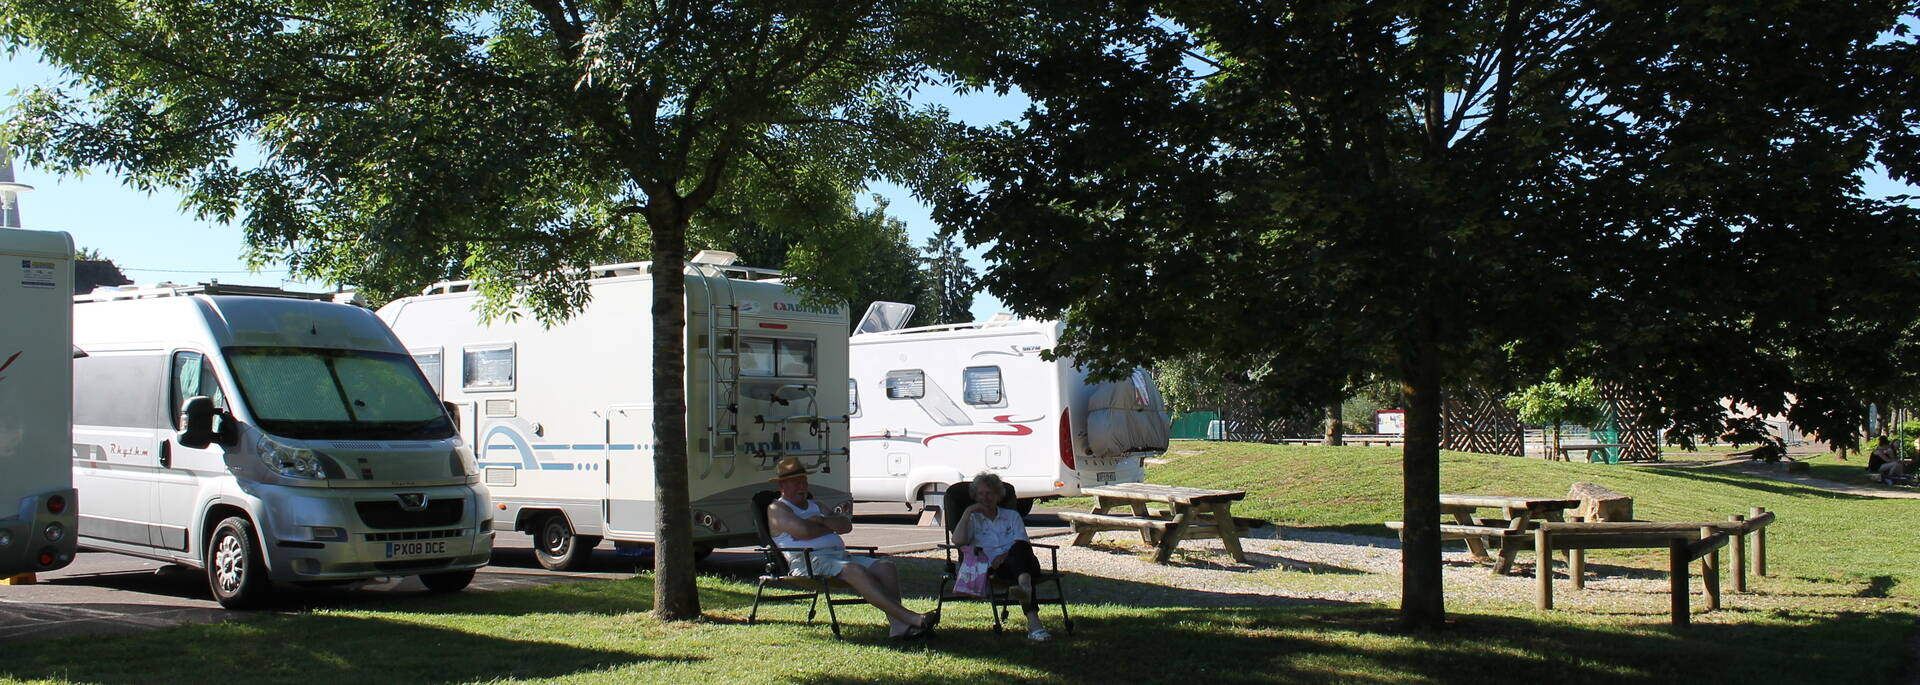 Givry voies vertes camping-car